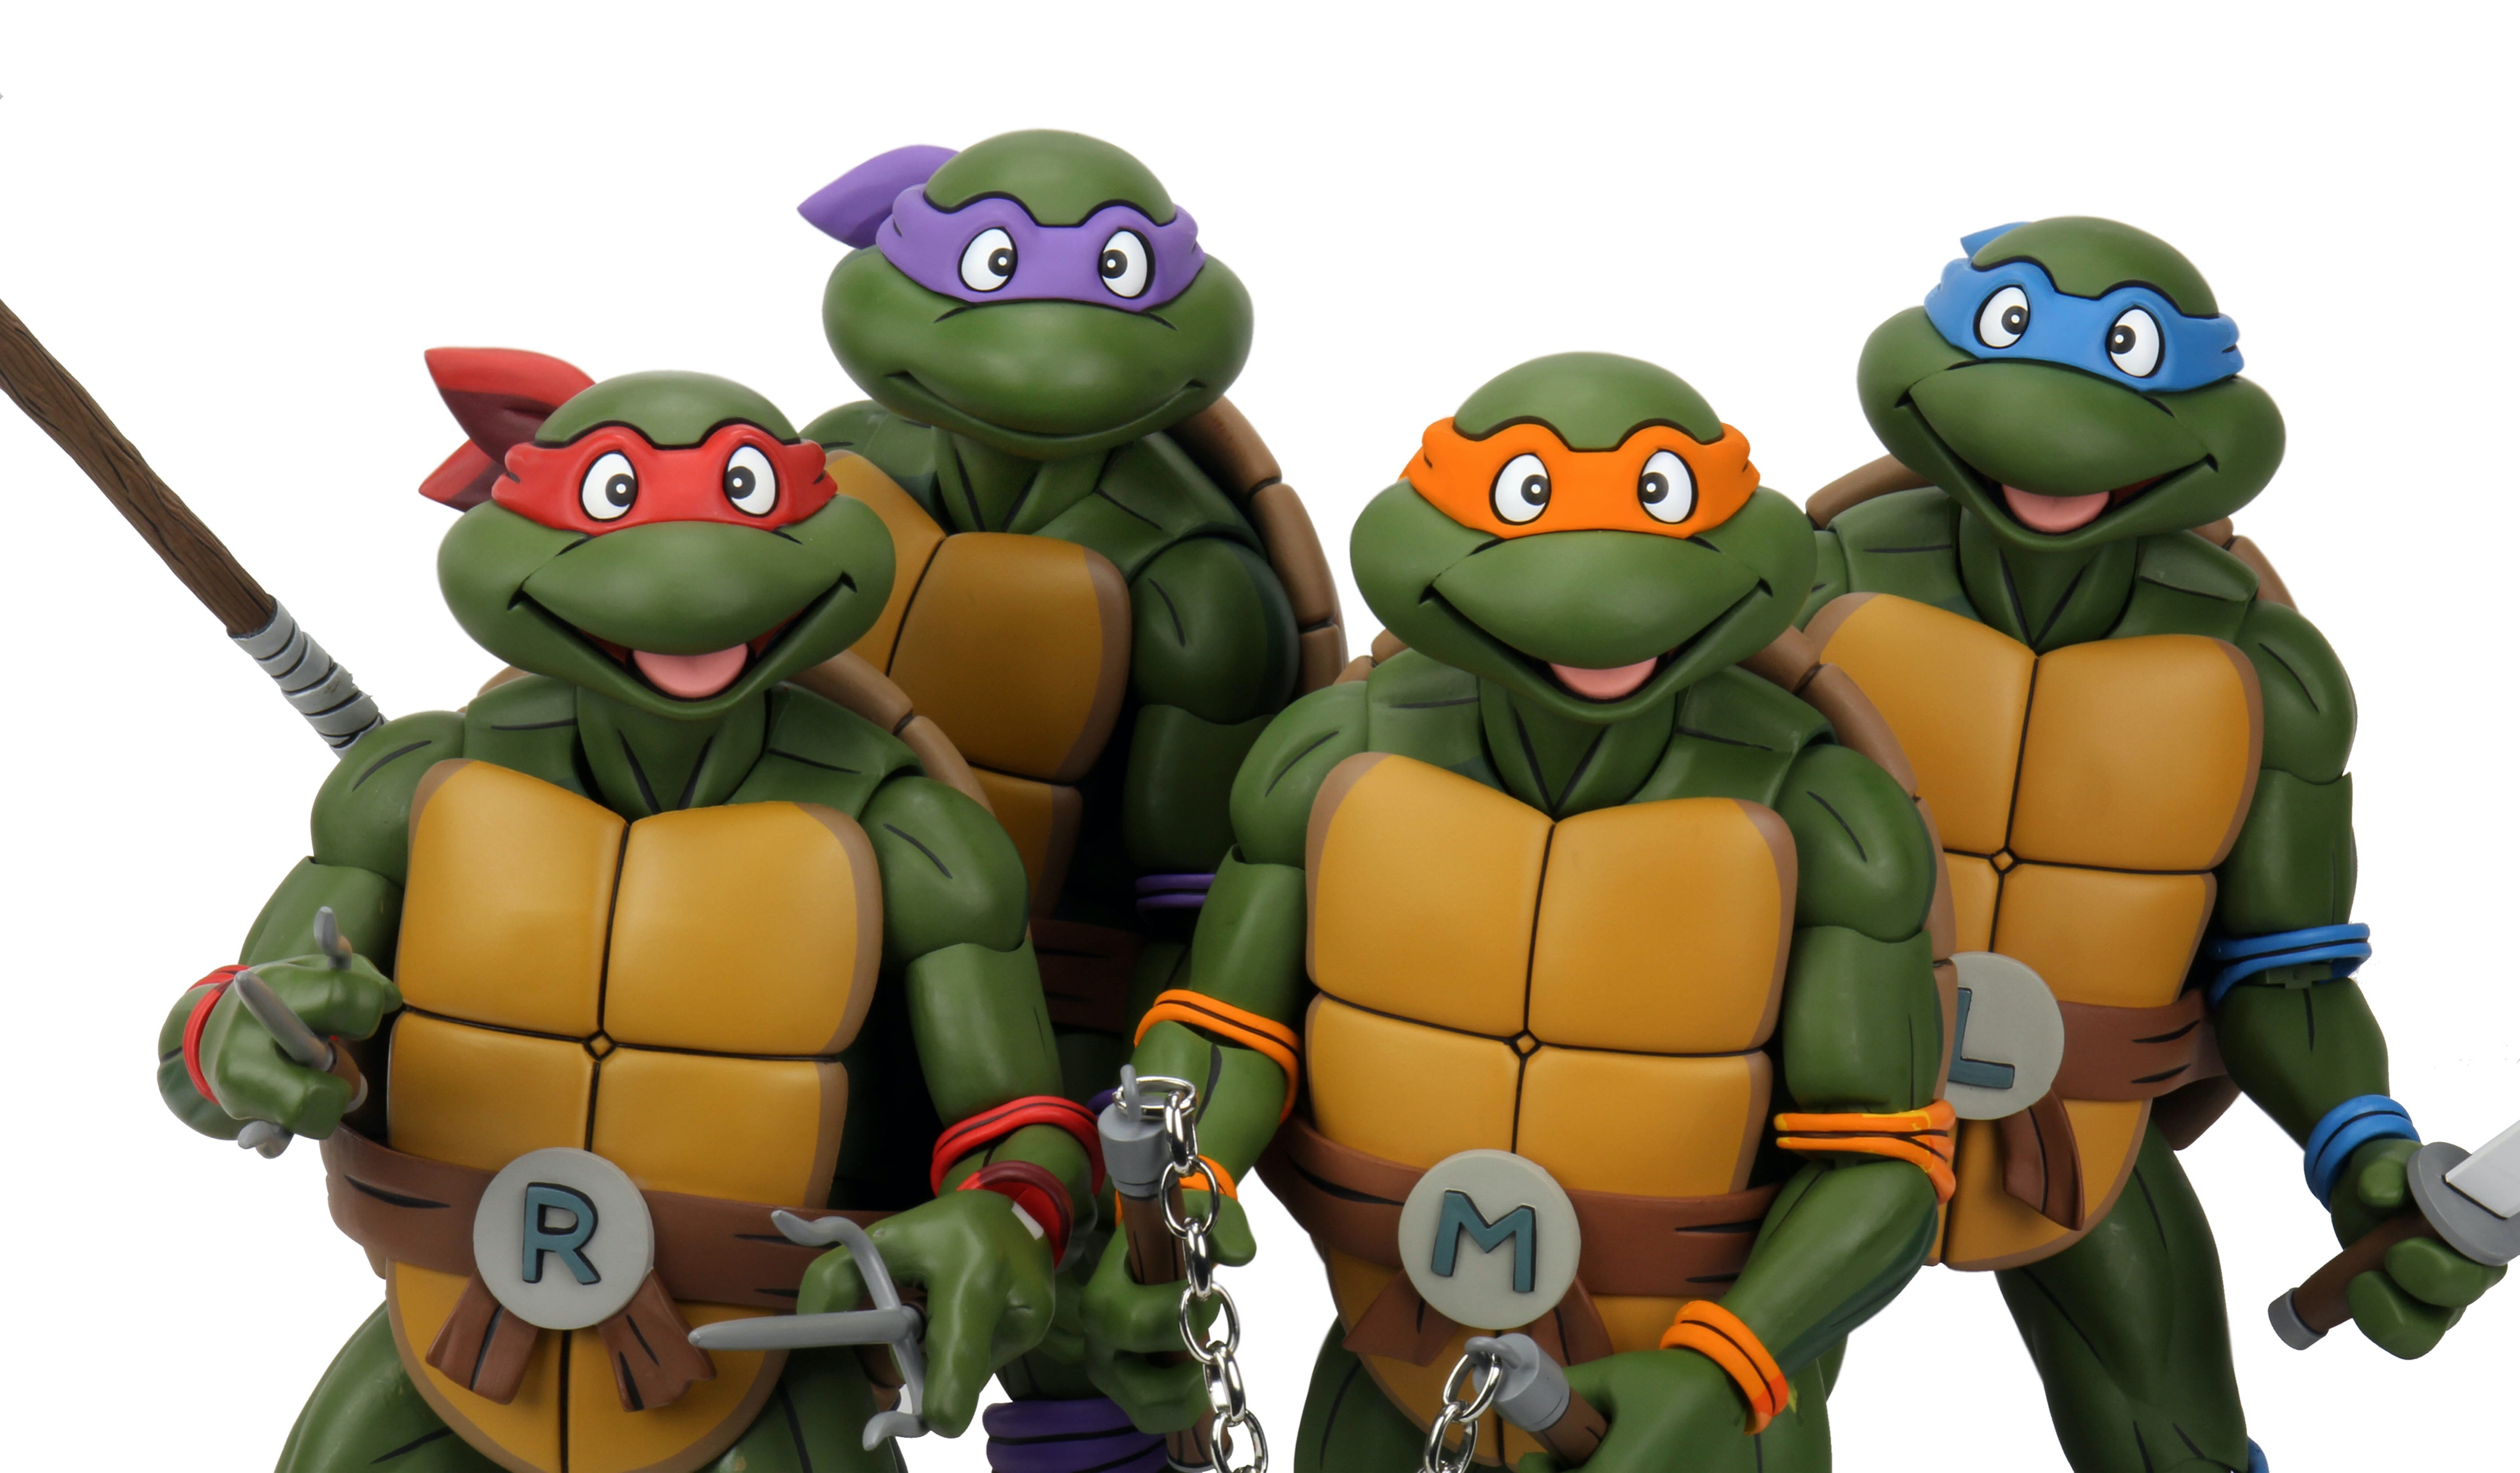 NECA's Comic-Con@Home Teenage Mutant Ninja Turtles Toy Reveals